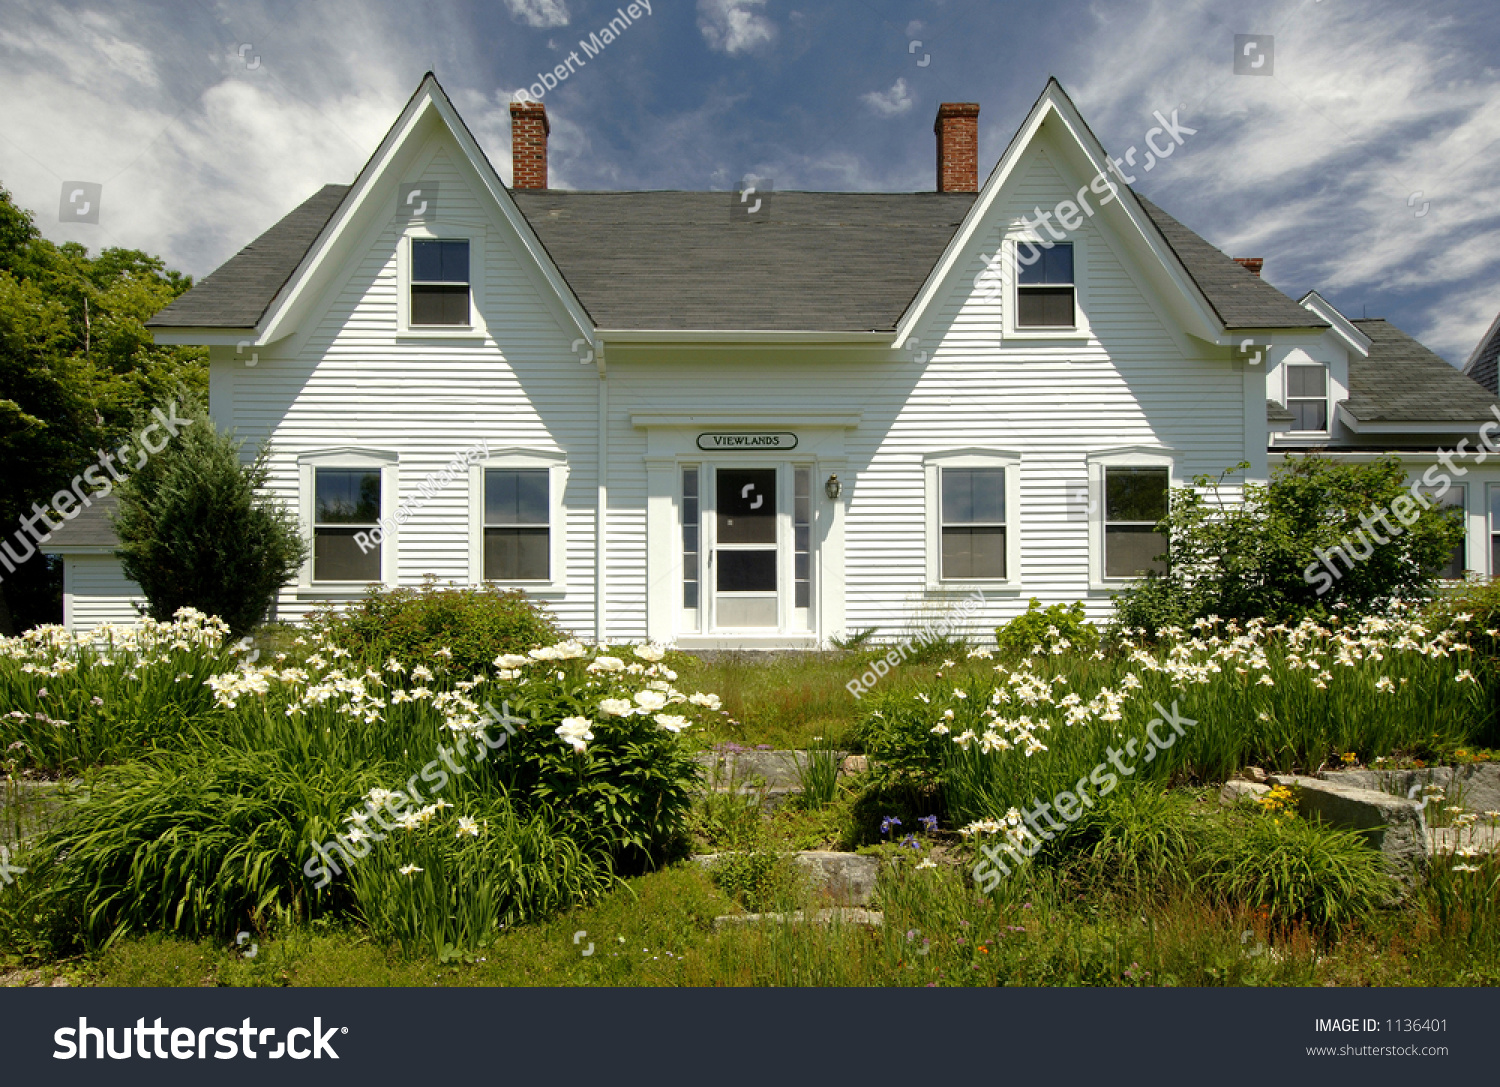 New england country home surrounded by stock photo 1136401 for New england country homes